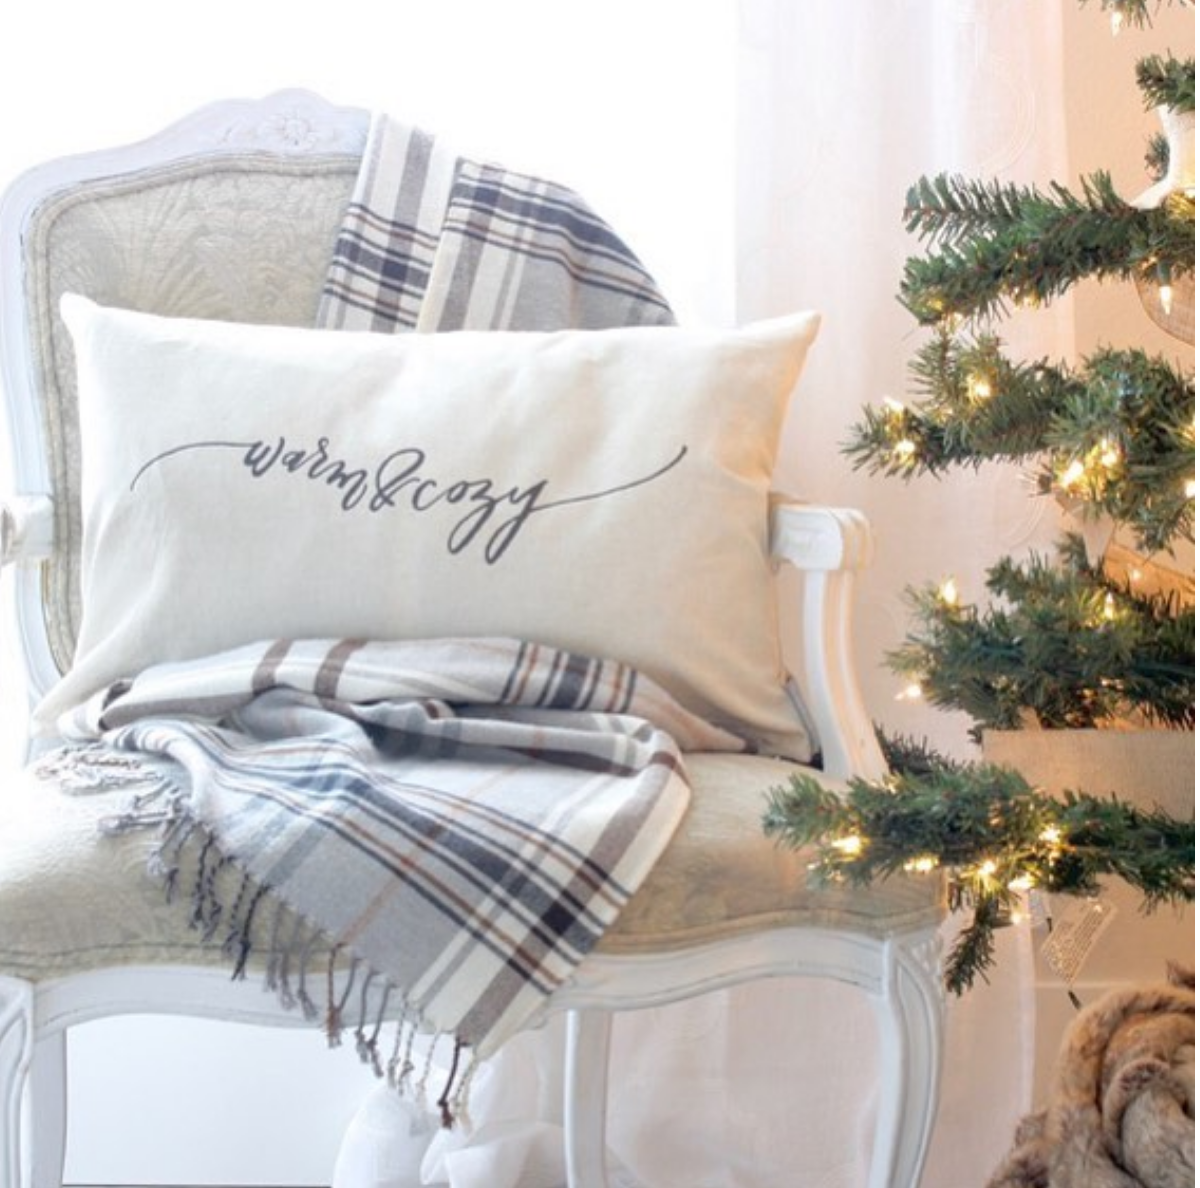 Declutter Week: 9 Things to Clean & Organize Between Christmas and New Year's Day